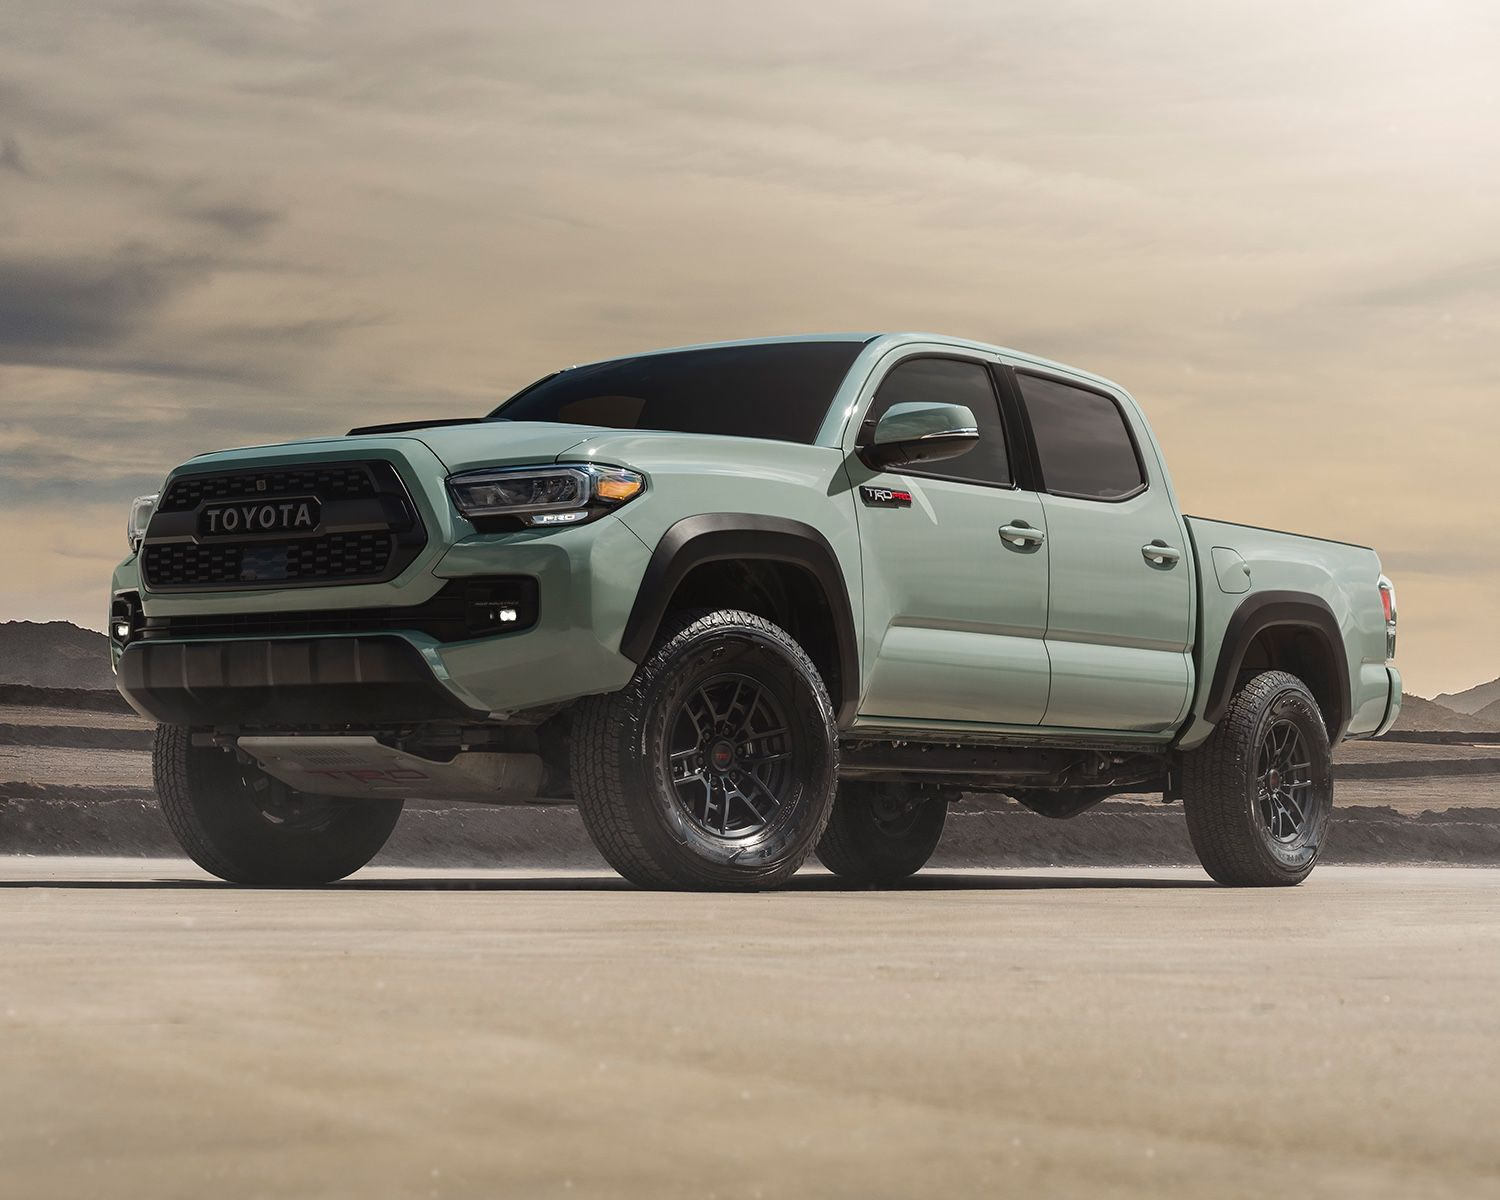 Tacoma TRD Pro shown in Lunar Rock